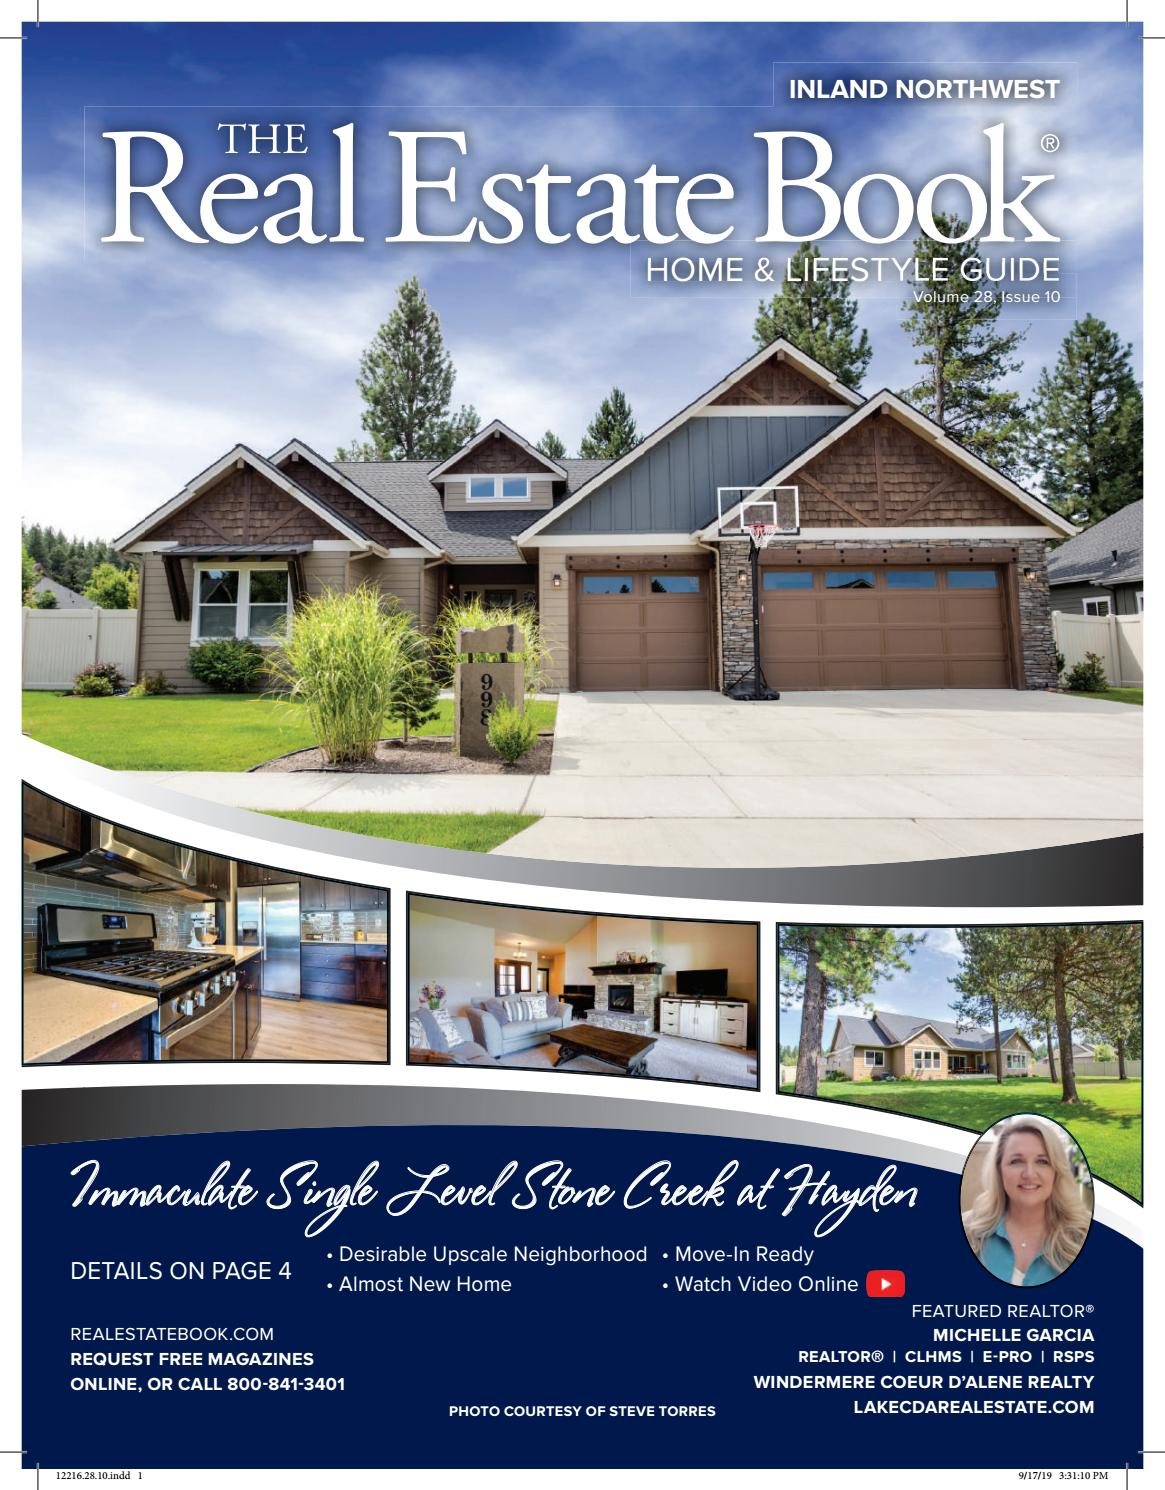 The Real Estate Book v.28 i.11 by Sa Howe - issuu Paint Ideas For Mobile Home X on 18x80 mobile home, 12x30 mobile home, 12x80 mobile home, 18x60 mobile home, 12 x 55 mobile home, 10x30 mobile home, pre-made deck for mobile home, adding garage to mobile home, 1975 mobile home, 10x40 mobile home, 18 x 60 mobile home, 12x40 mobile home, 97 single wide mobile home, 14x48 mobile home, 12x20 mobile home, 16x60 mobile home, atomic mobile home, basement under mobile home, 1969 mobile home, 12x70 mobile home,